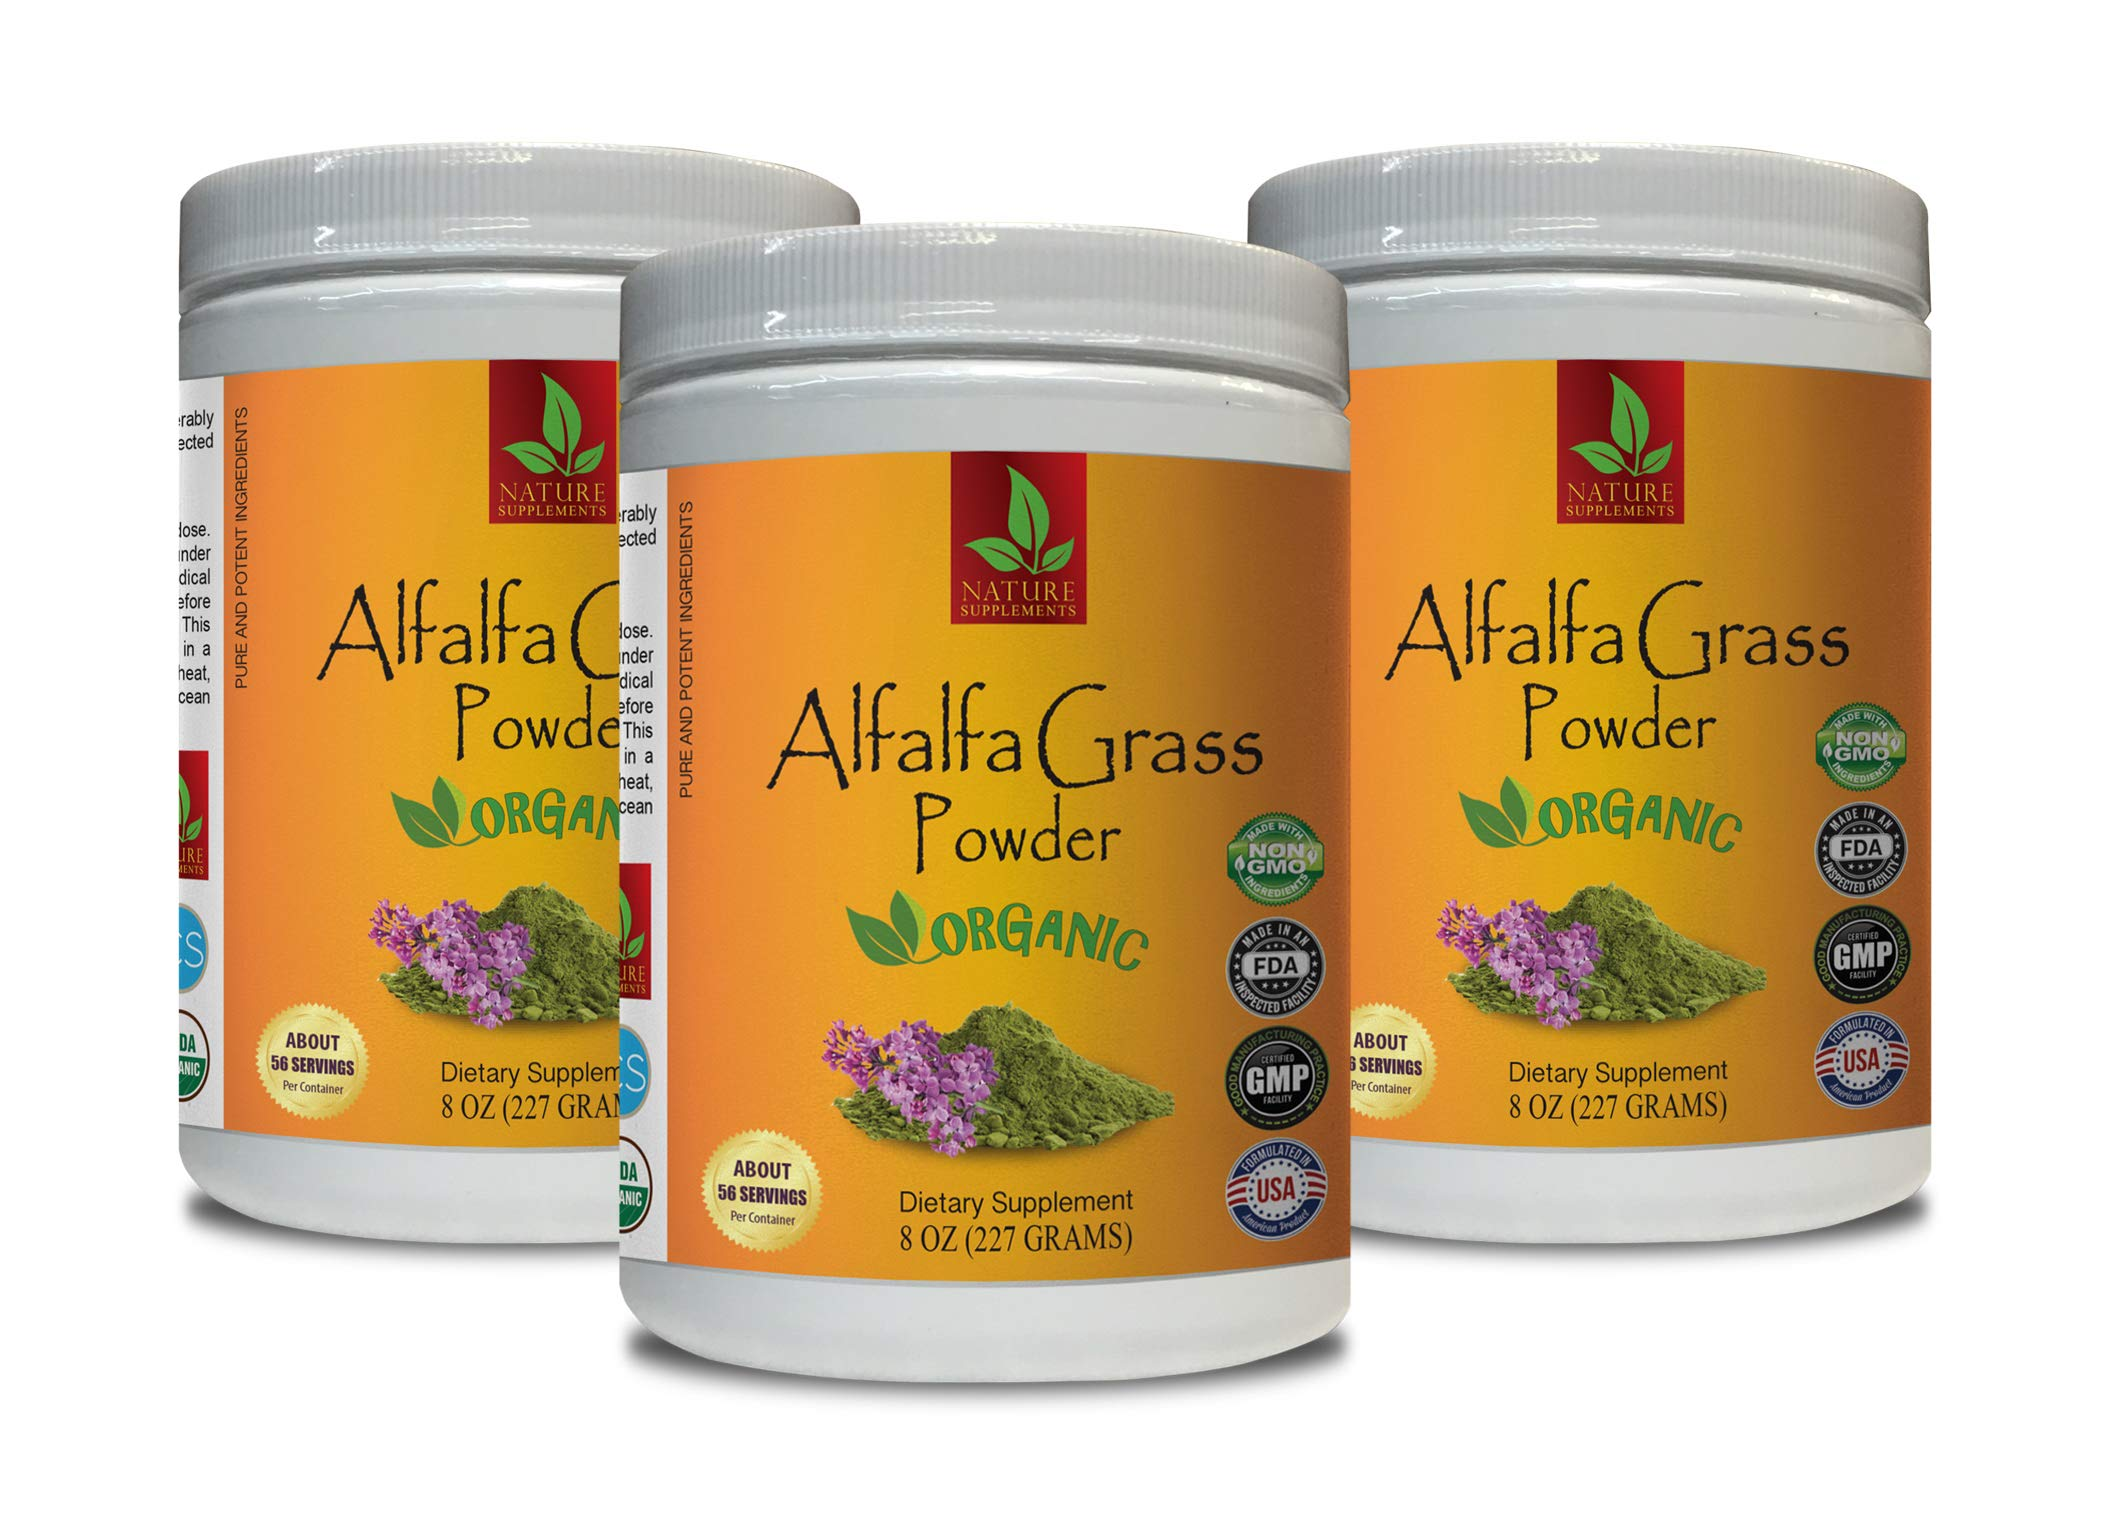 Blood Pressure Supplement Natural - Alfalfa Organic Grass Powder - Pure and Potent Ingredients - Digestion Advanced Formula - 3 Cans 24 OZ (168 Servings)